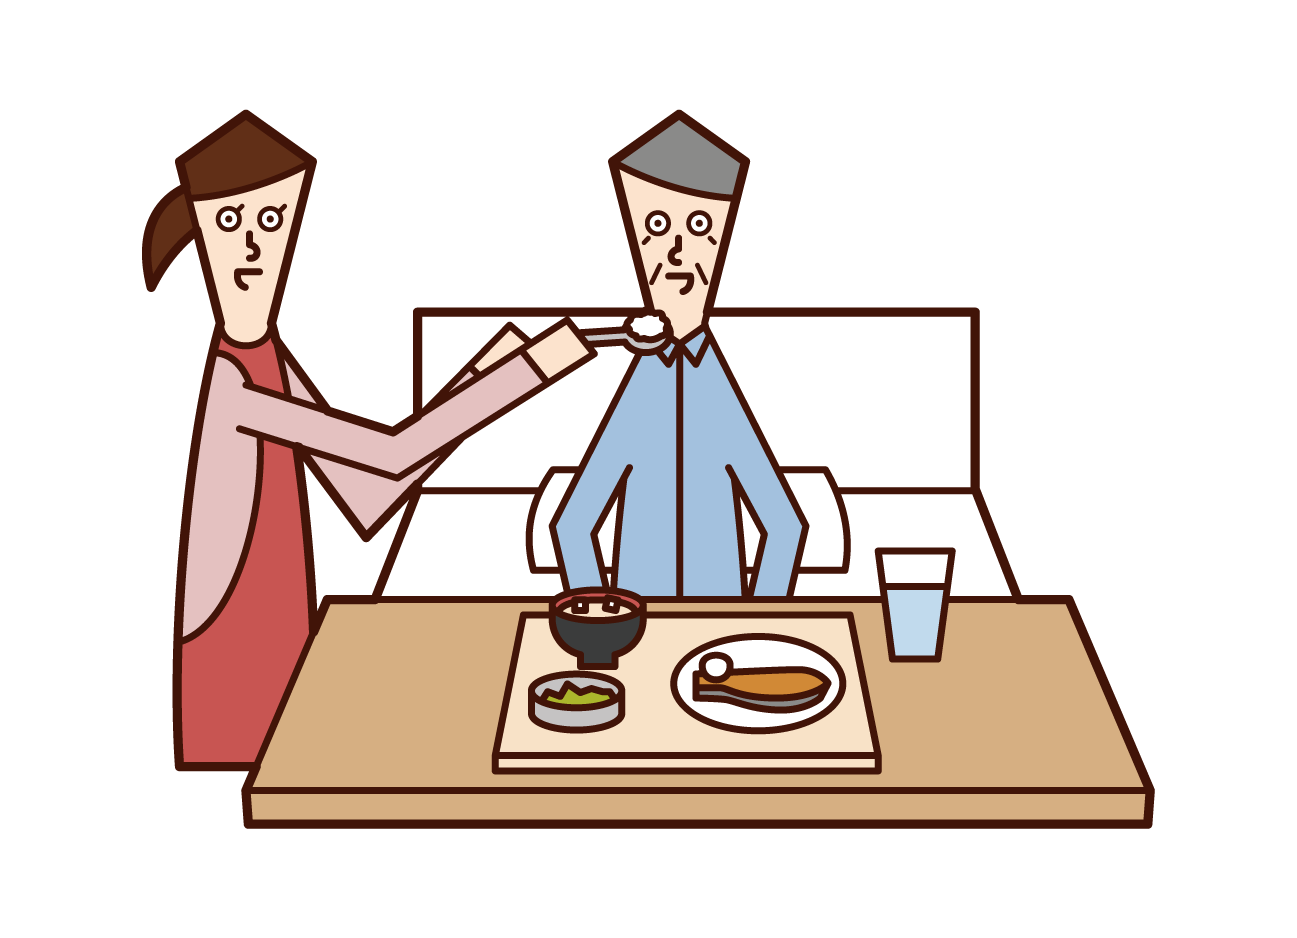 Illustration of an elderly man (man) receiving meal assistance